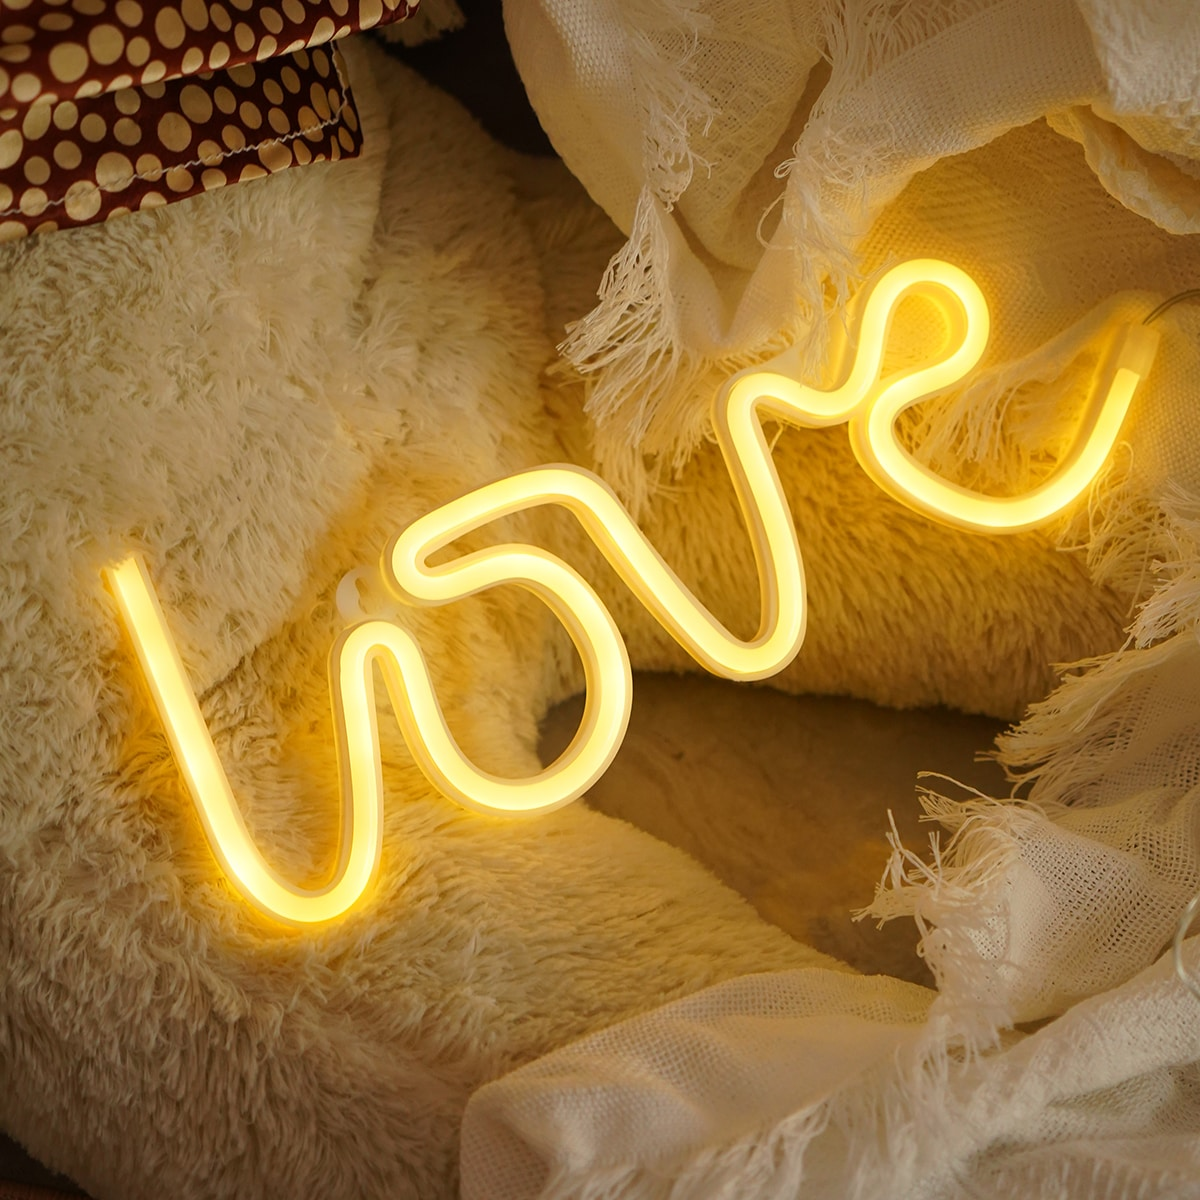 1pc Letter Design Decorative Light, SHEIN  - buy with discount